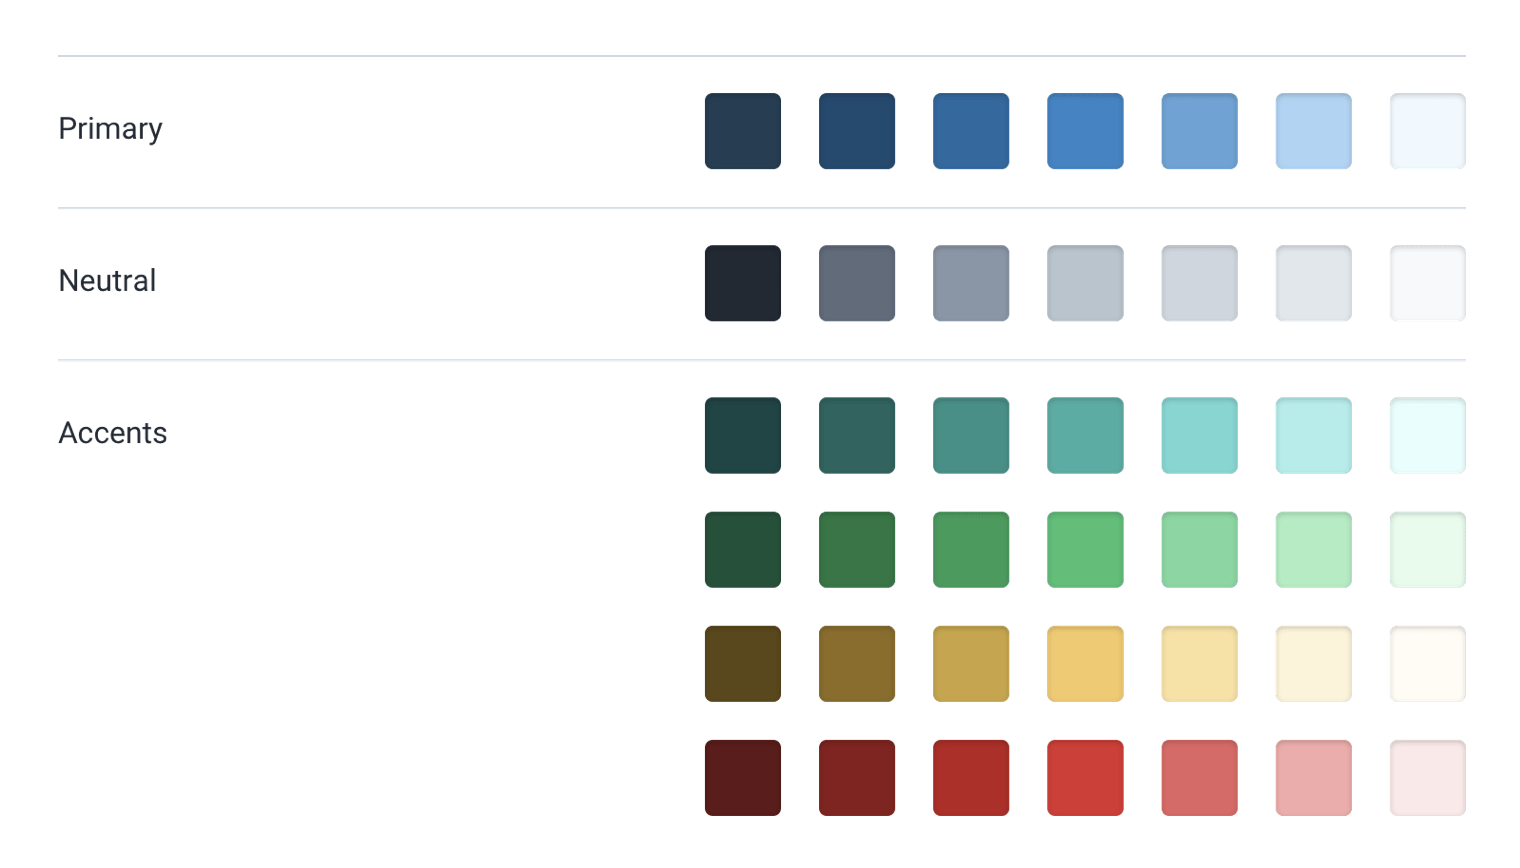 9 shades of 6 different colors.